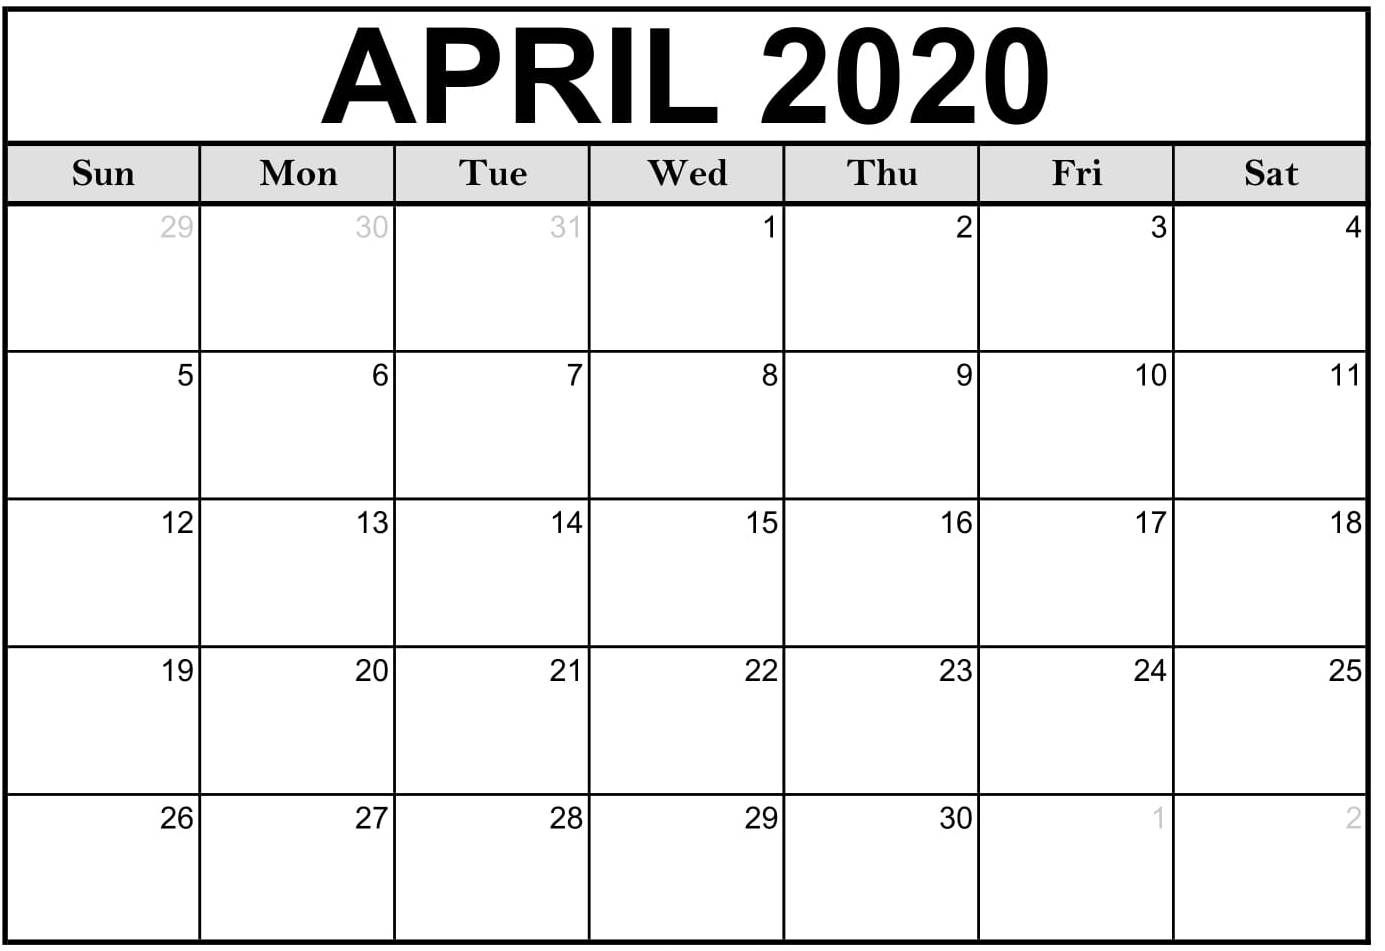 Print Calendar For April 2020 Monthly Fillable Sheets - Set